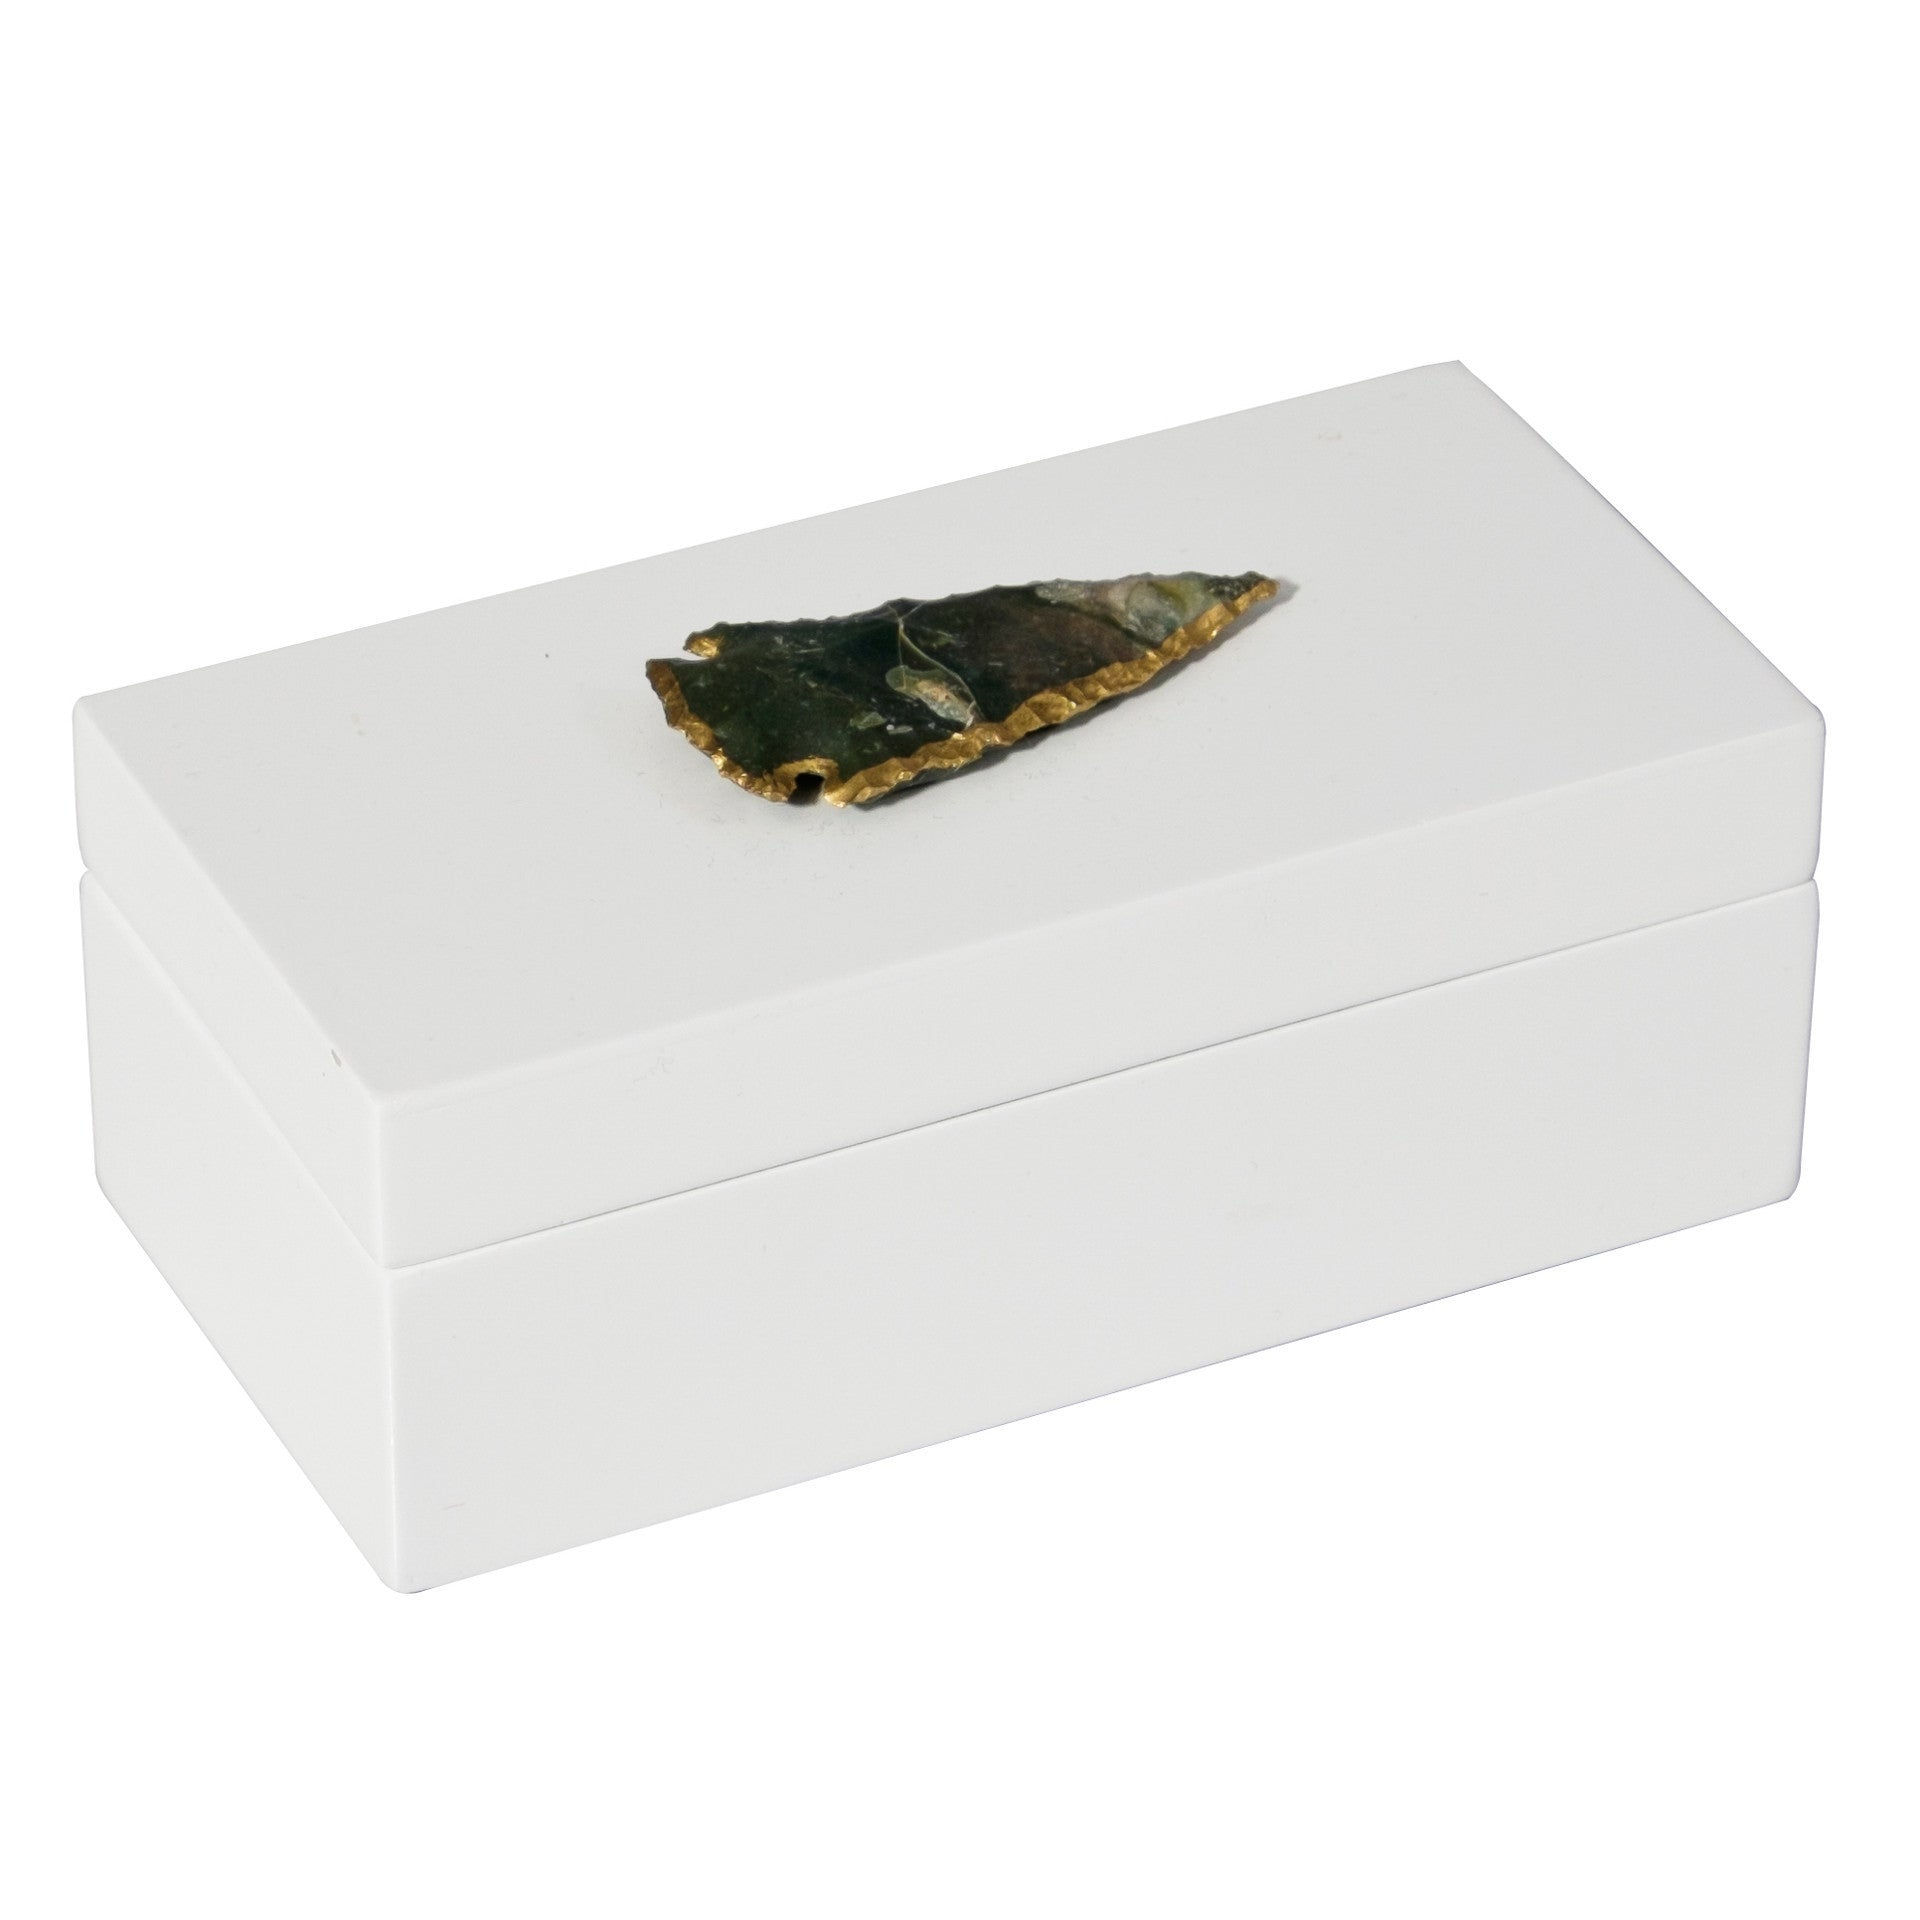 Medium White Lacquer Box with Agate Arrowhead